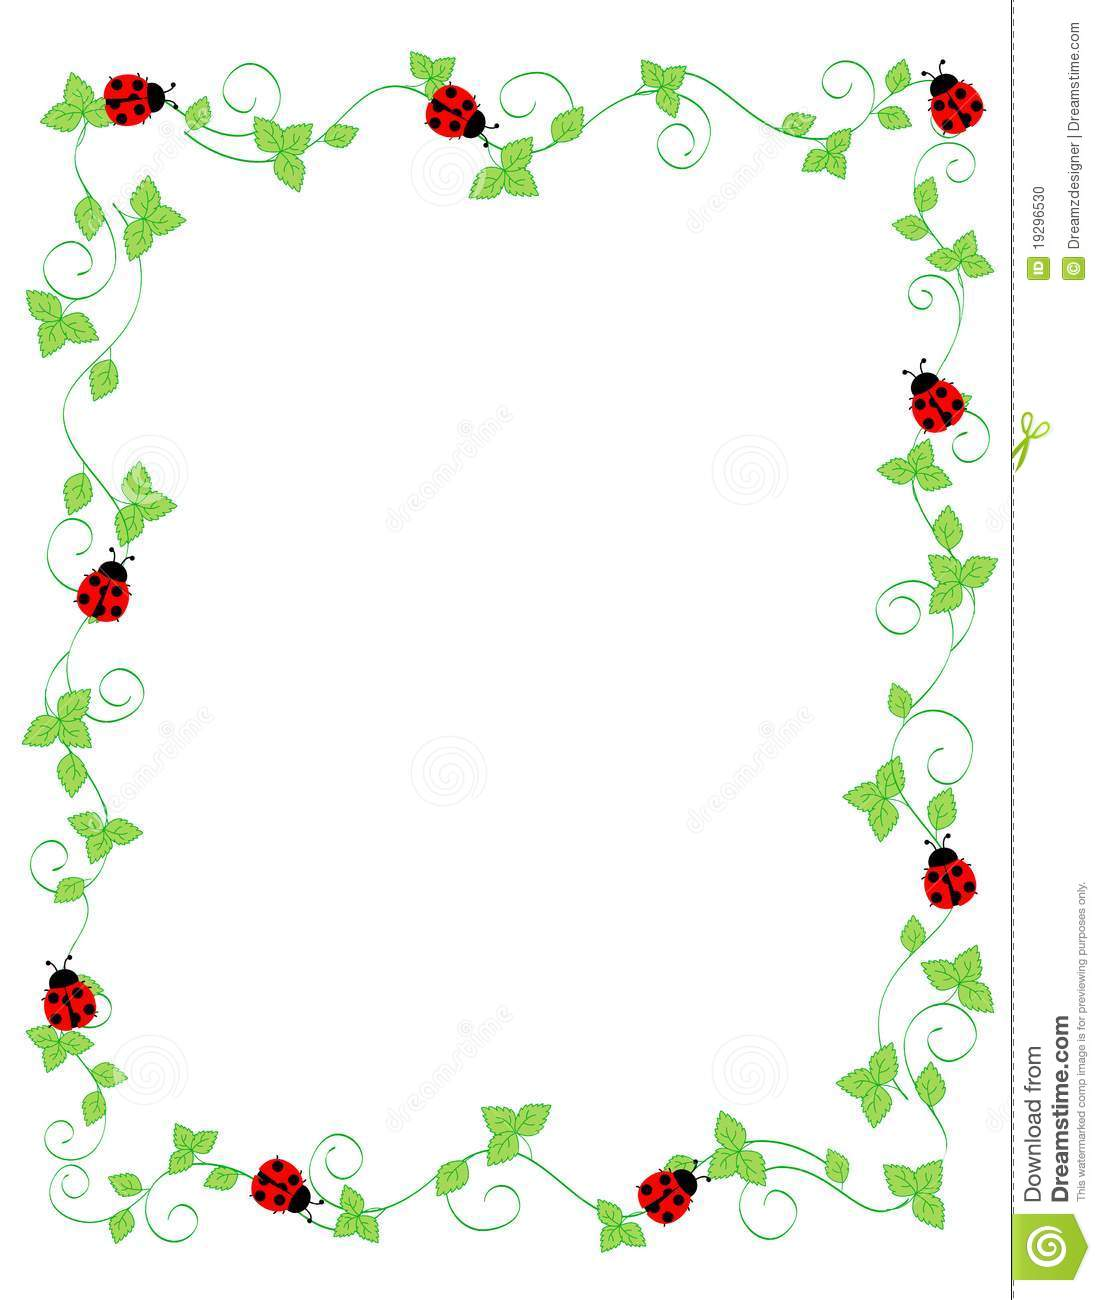 Boarder clipart ladybug.  collection of border